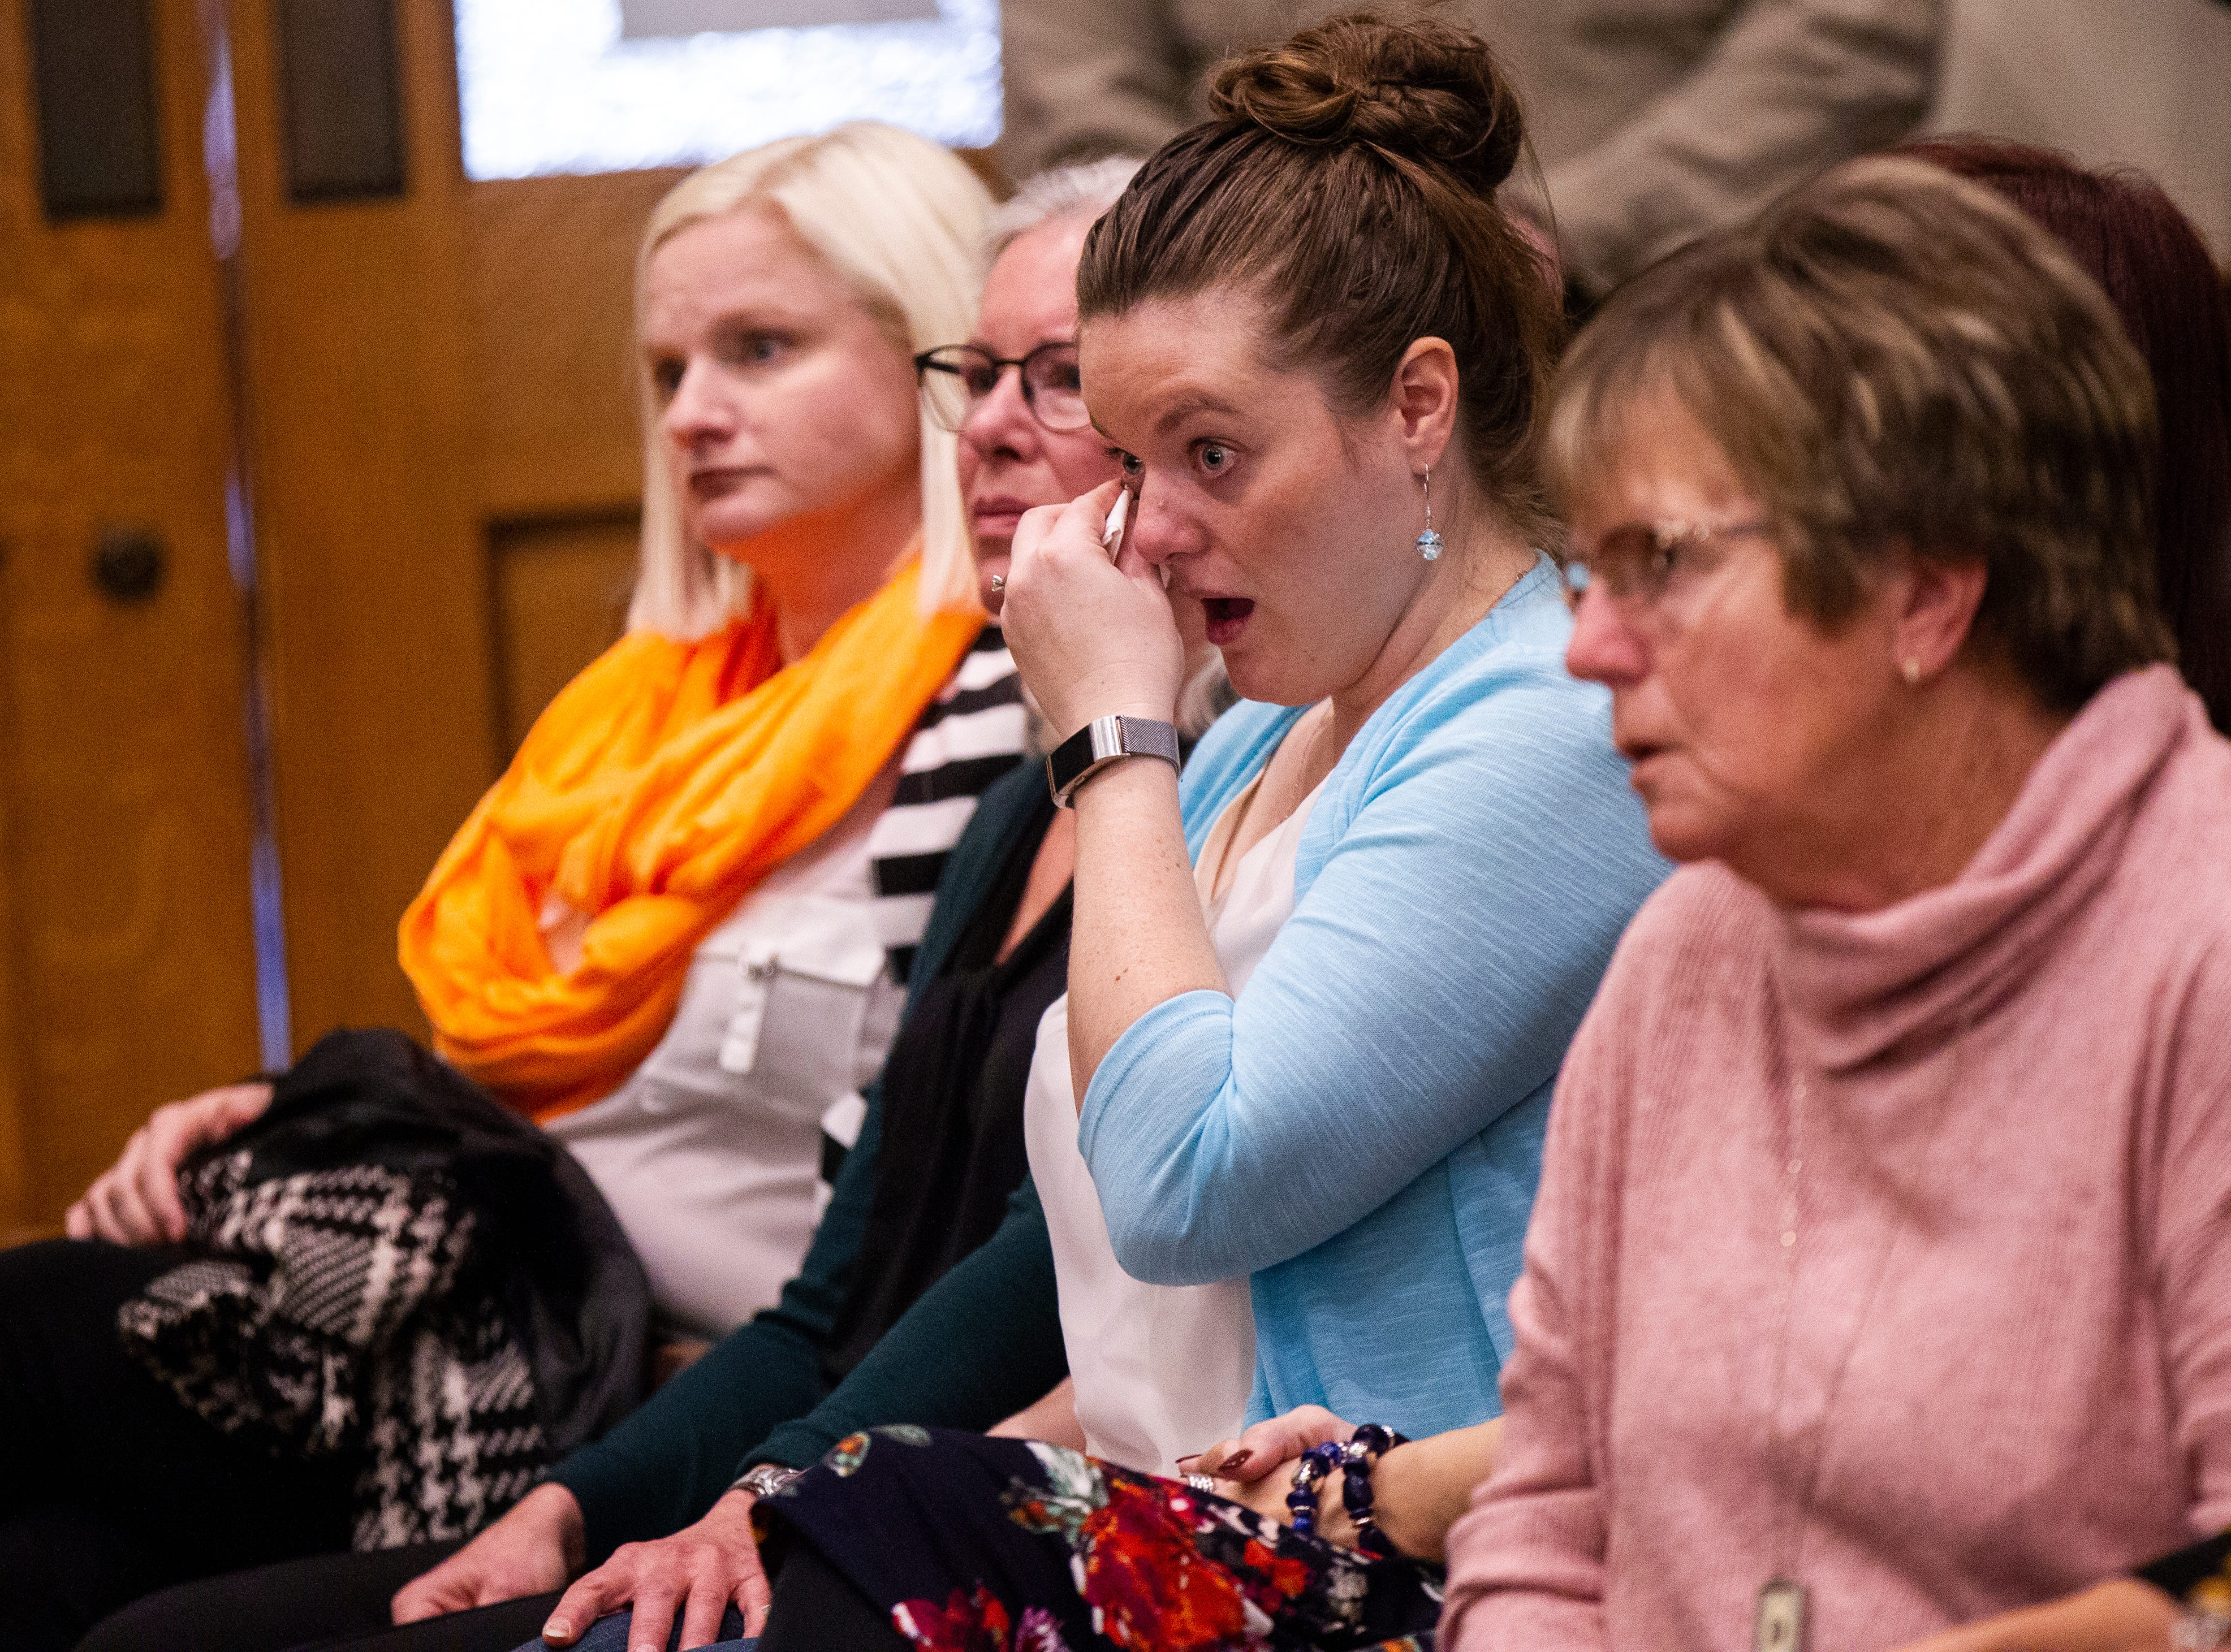 Harmony Hauser, Johnathan Wieseler's fiancé, wipes a tear while sitting with family members of victims during a sentencing hearing for Curtis Cortez Jones on Friday, Jan. 4, 2019, at the Johnson County Courthouse, in Iowa City, Iowa.